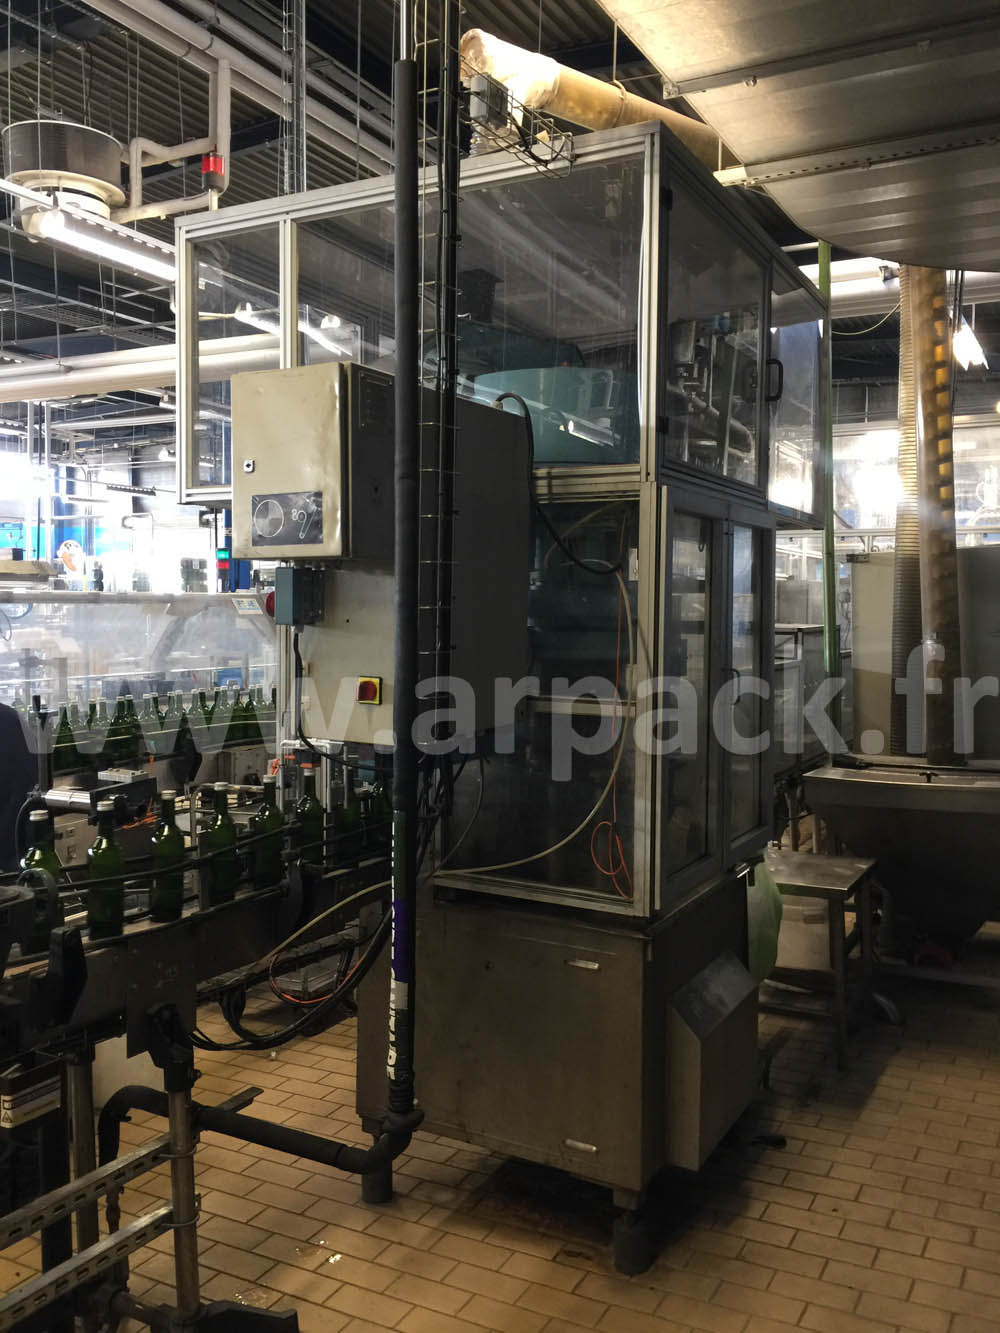 Pastis bottling line 8000 bottles / hour